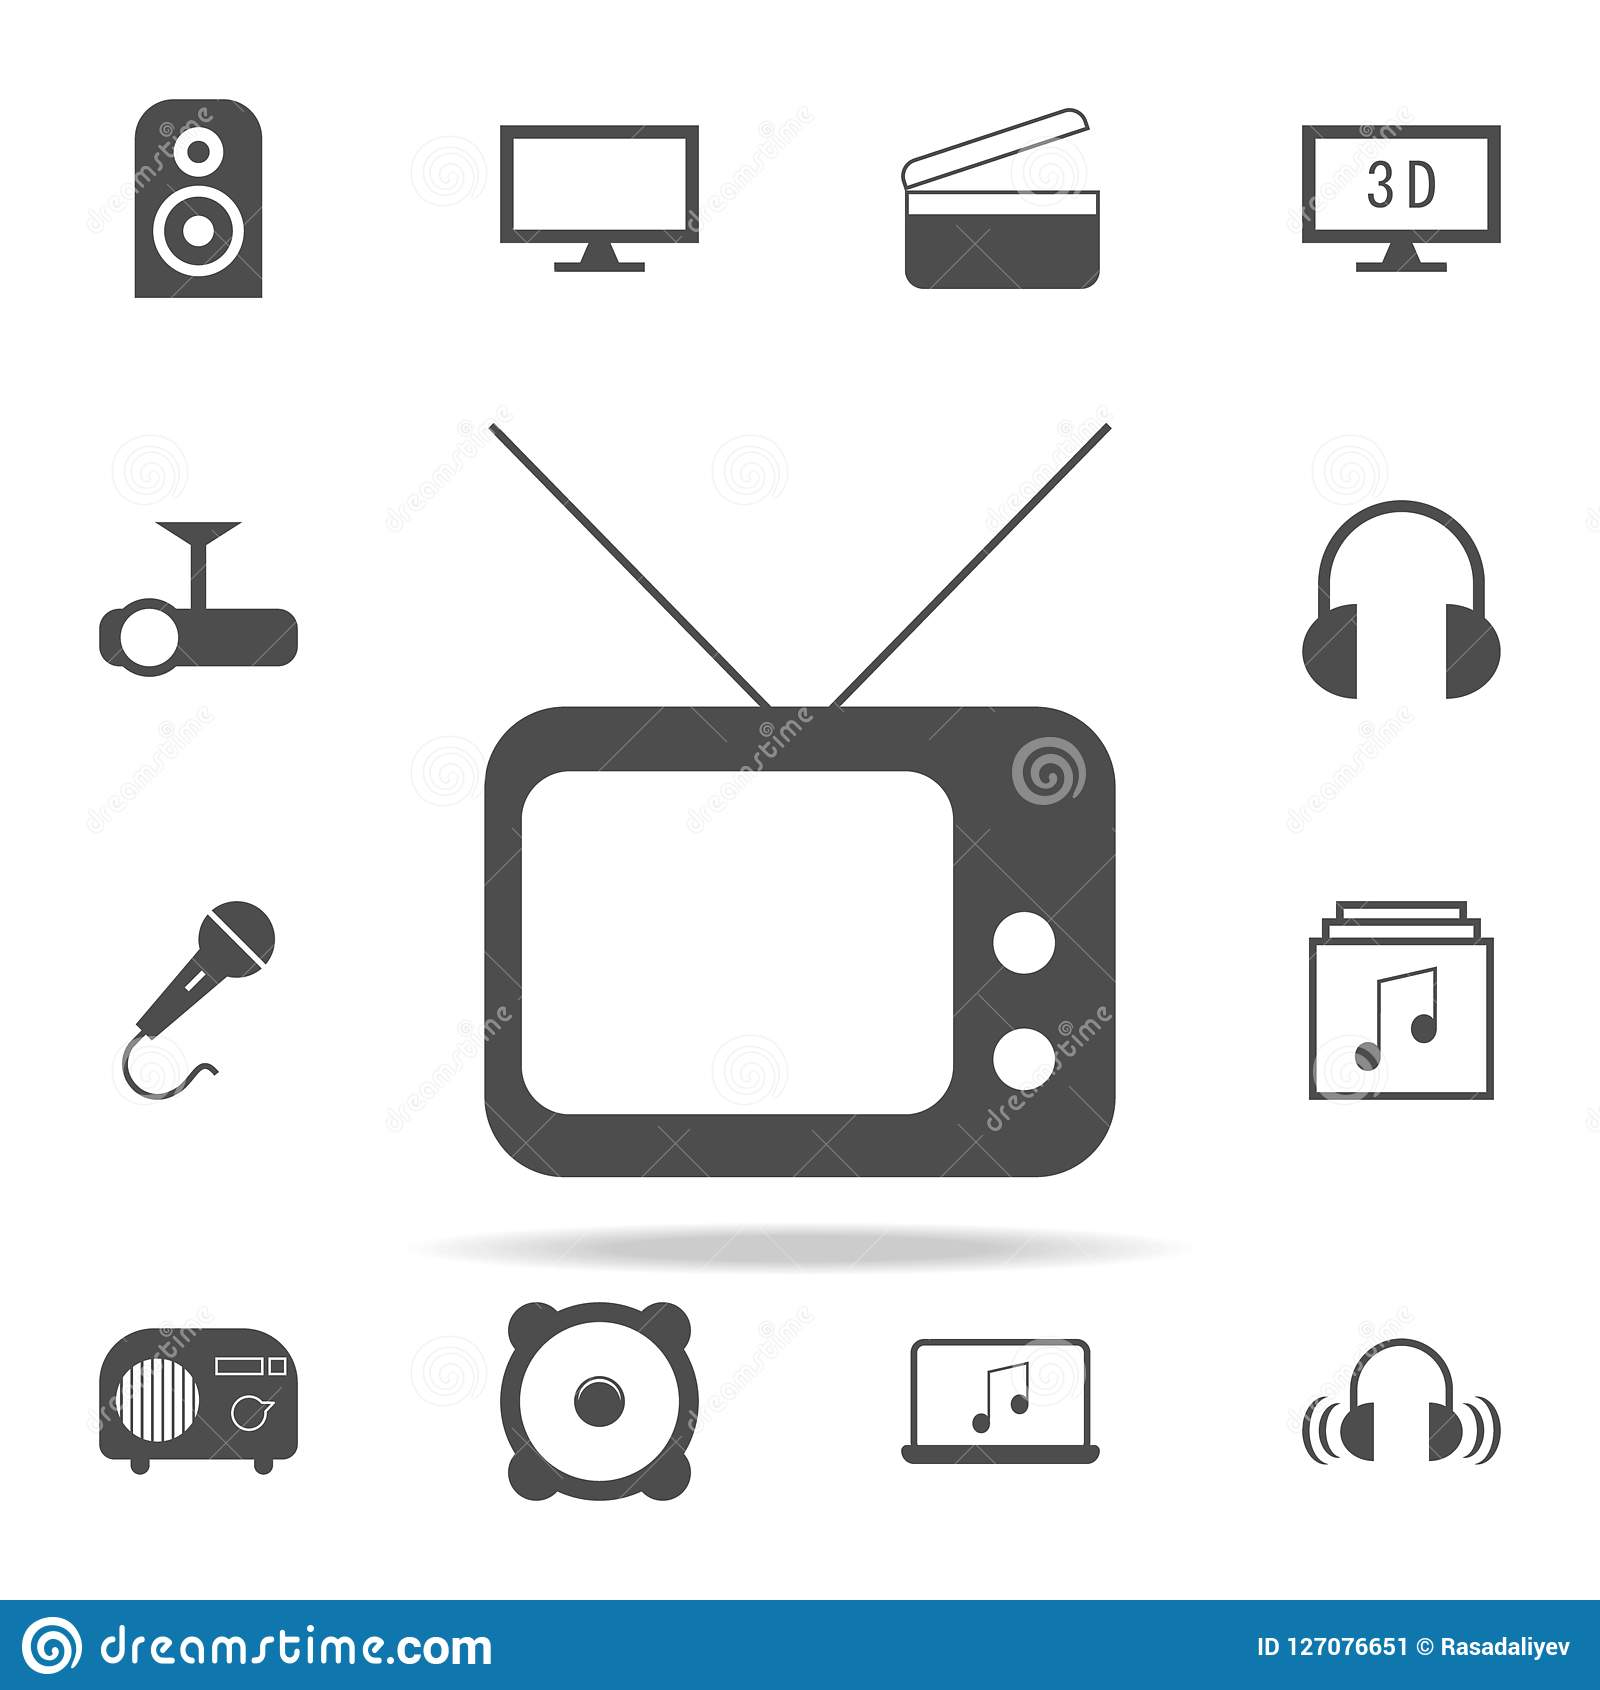 old TV icon. web icons universal set for web and mobile